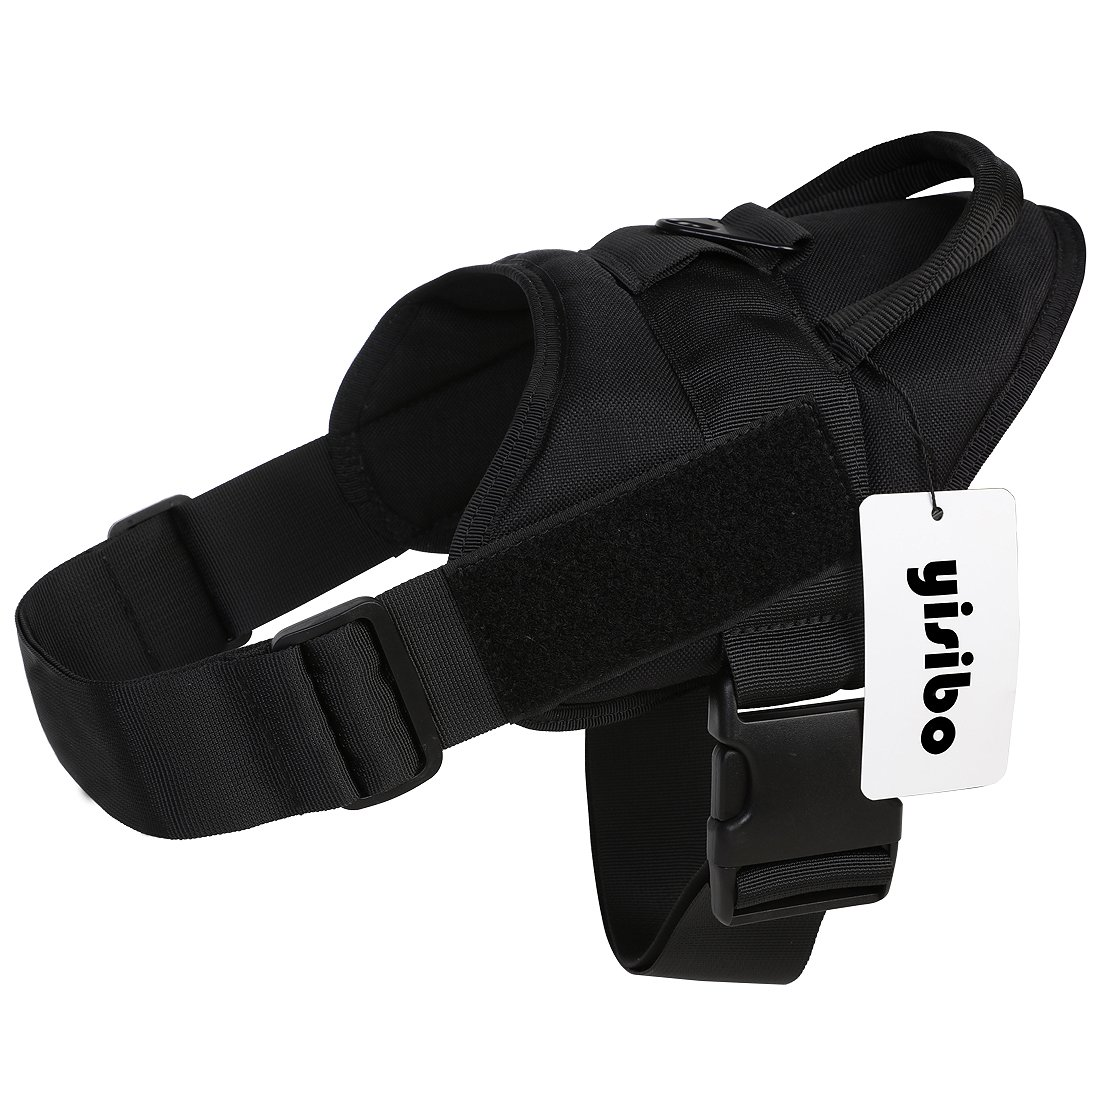 Black Small(20\ Black Small(20\ yisibo Service Training Dog Vest Harness Tactical Military Patrol K9 Working No-Pull Dog Harness with Handle(S(20 -27  Chest Girth),Black)